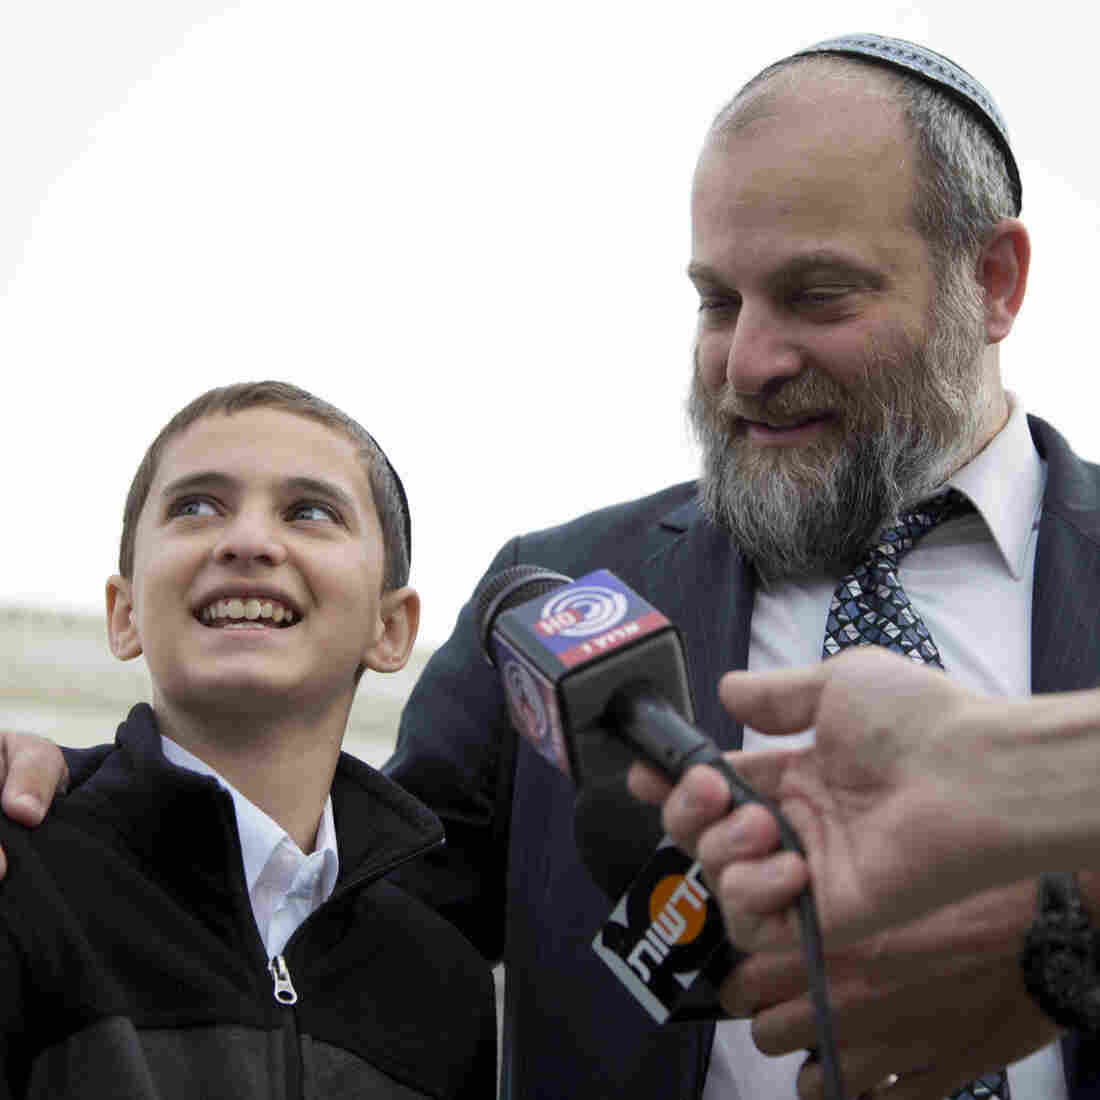 Menachem Zivotofsky and his father, Ari Zivotofsky, gather to speak to media outside the Supreme Court in Washington on Monday. The court is taking its second look at a dispute over the wording of U.S. passports for Americans born in Jerusalem, a case with potential foreign policy implications.